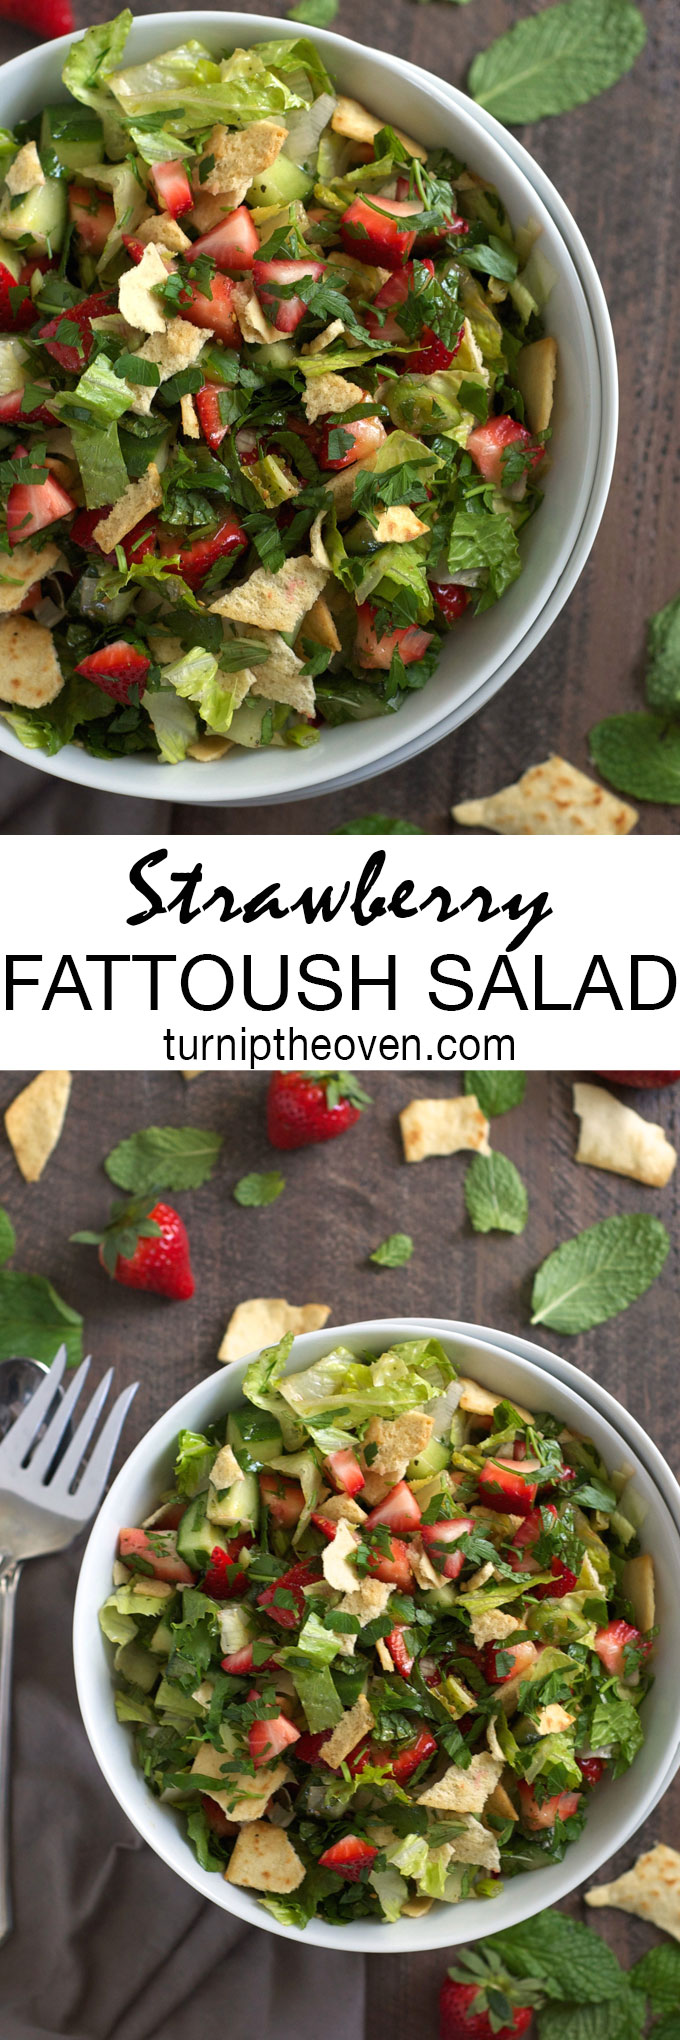 Ripe, juicy berries replace tomatoes in this classic Middle Eastern salad loaded with crushed pita chips. Made with simple, seasonal ingredients, this vegan salad is perfect for weeknight dinners and backyard BBQs.